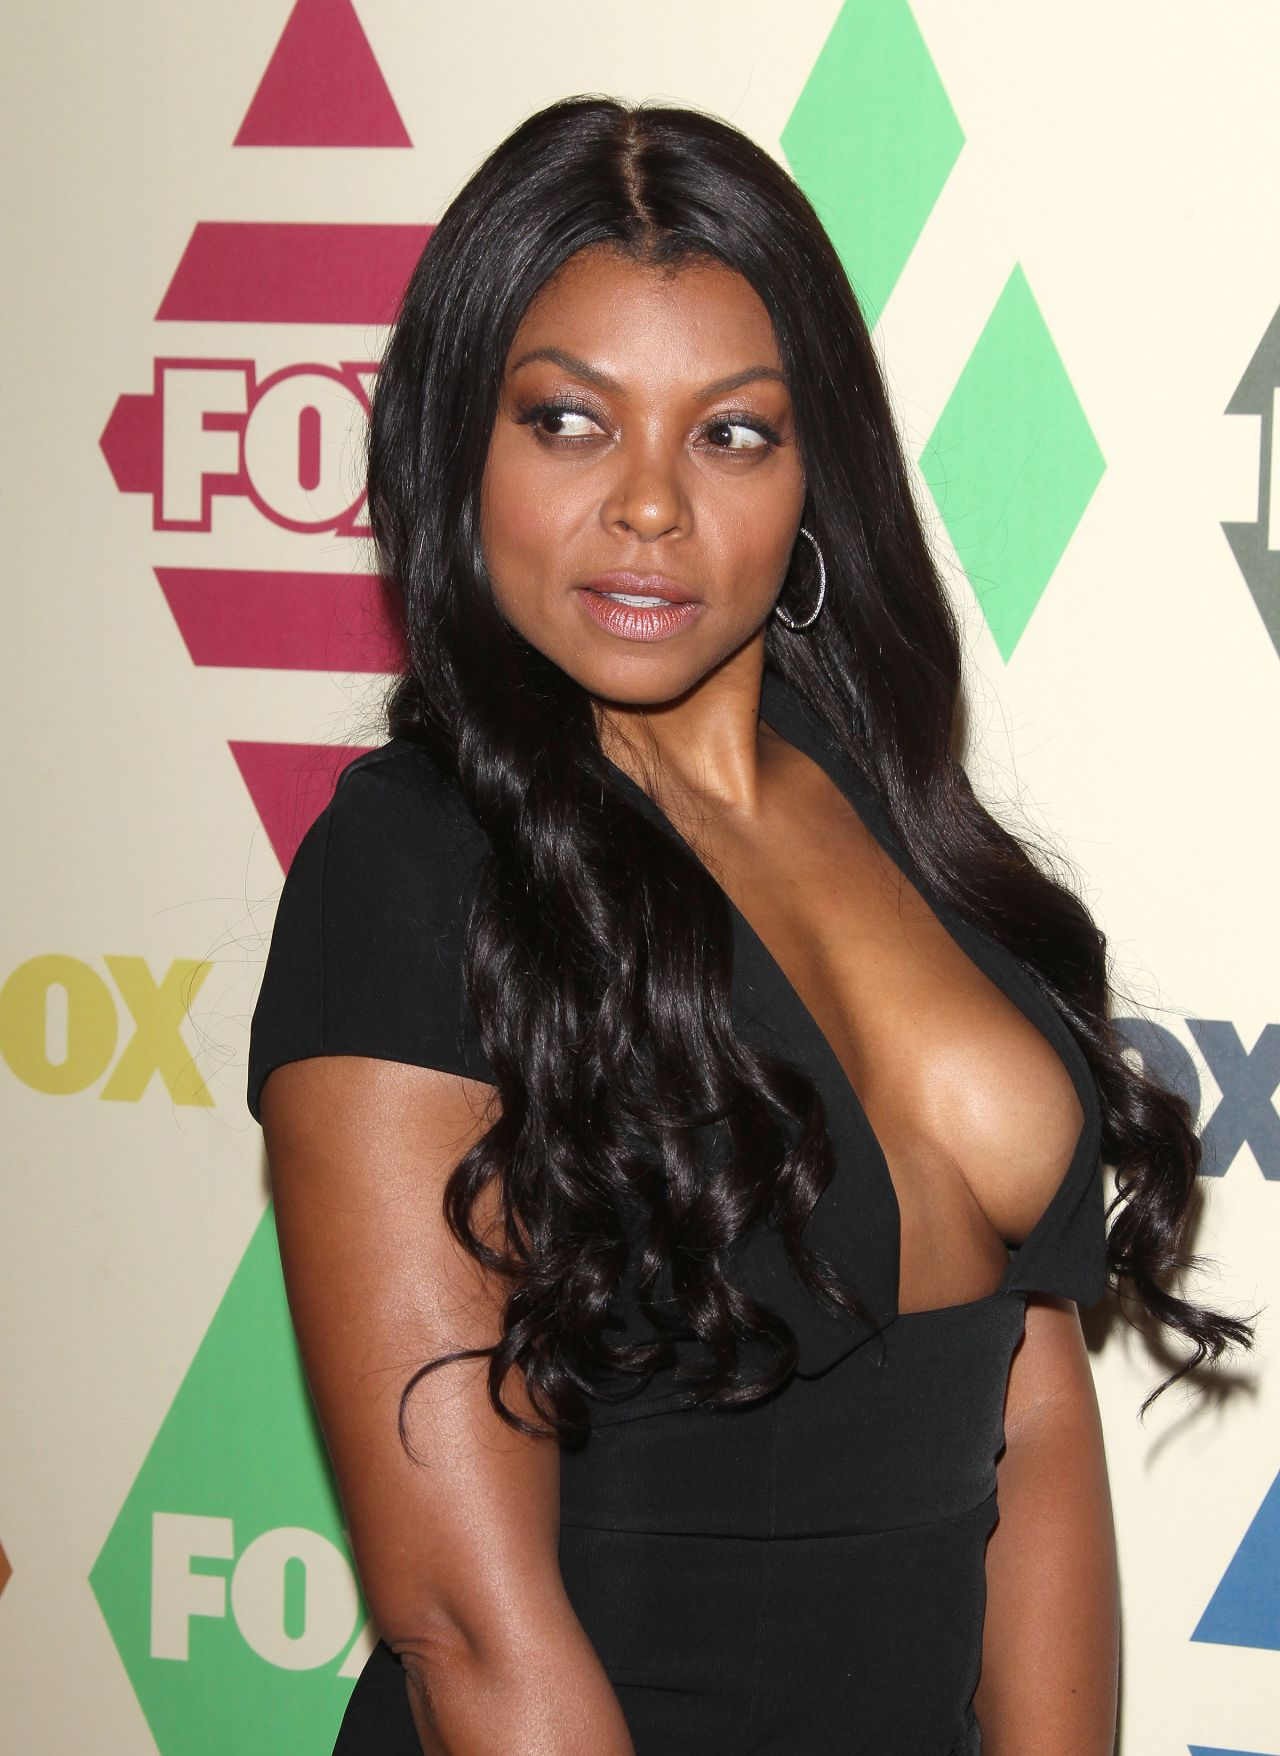 Celebrites Taraji P. Henson nudes (85 foto and video), Topless, Is a cute, Twitter, cameltoe 2020